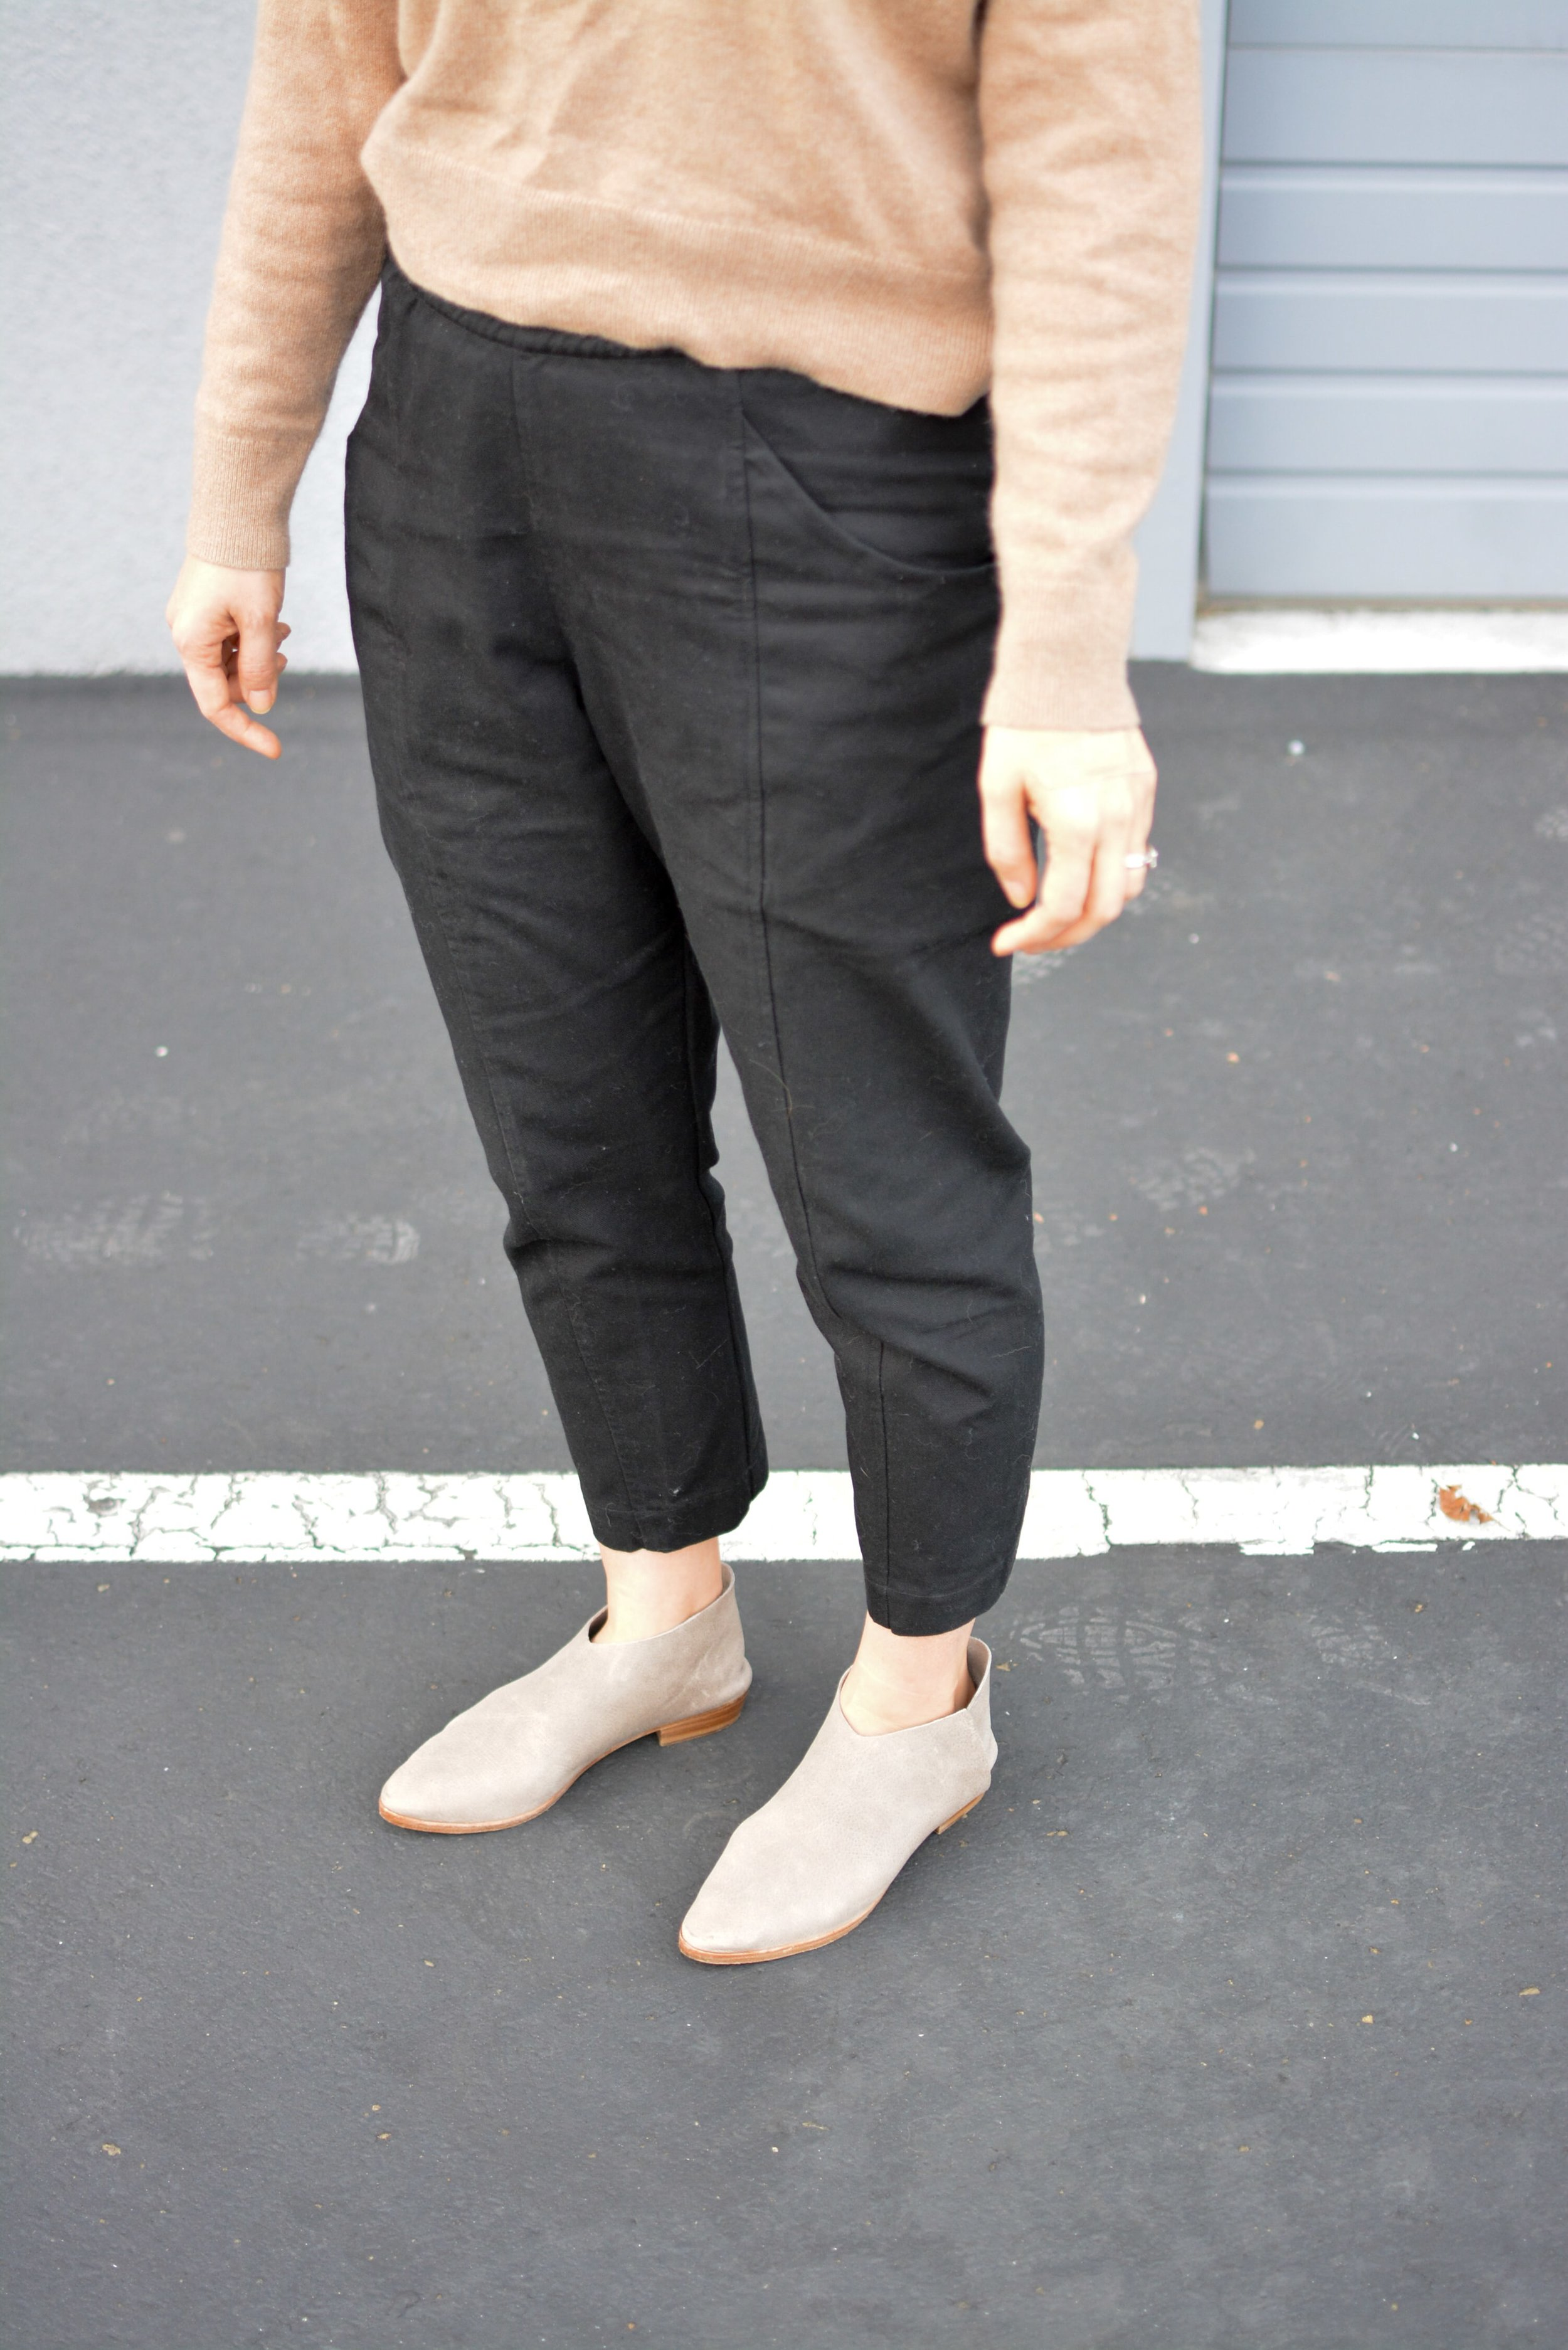 Elizabeth Suzann Review The Clyde Work Pants (1 of 1)-min.jpg